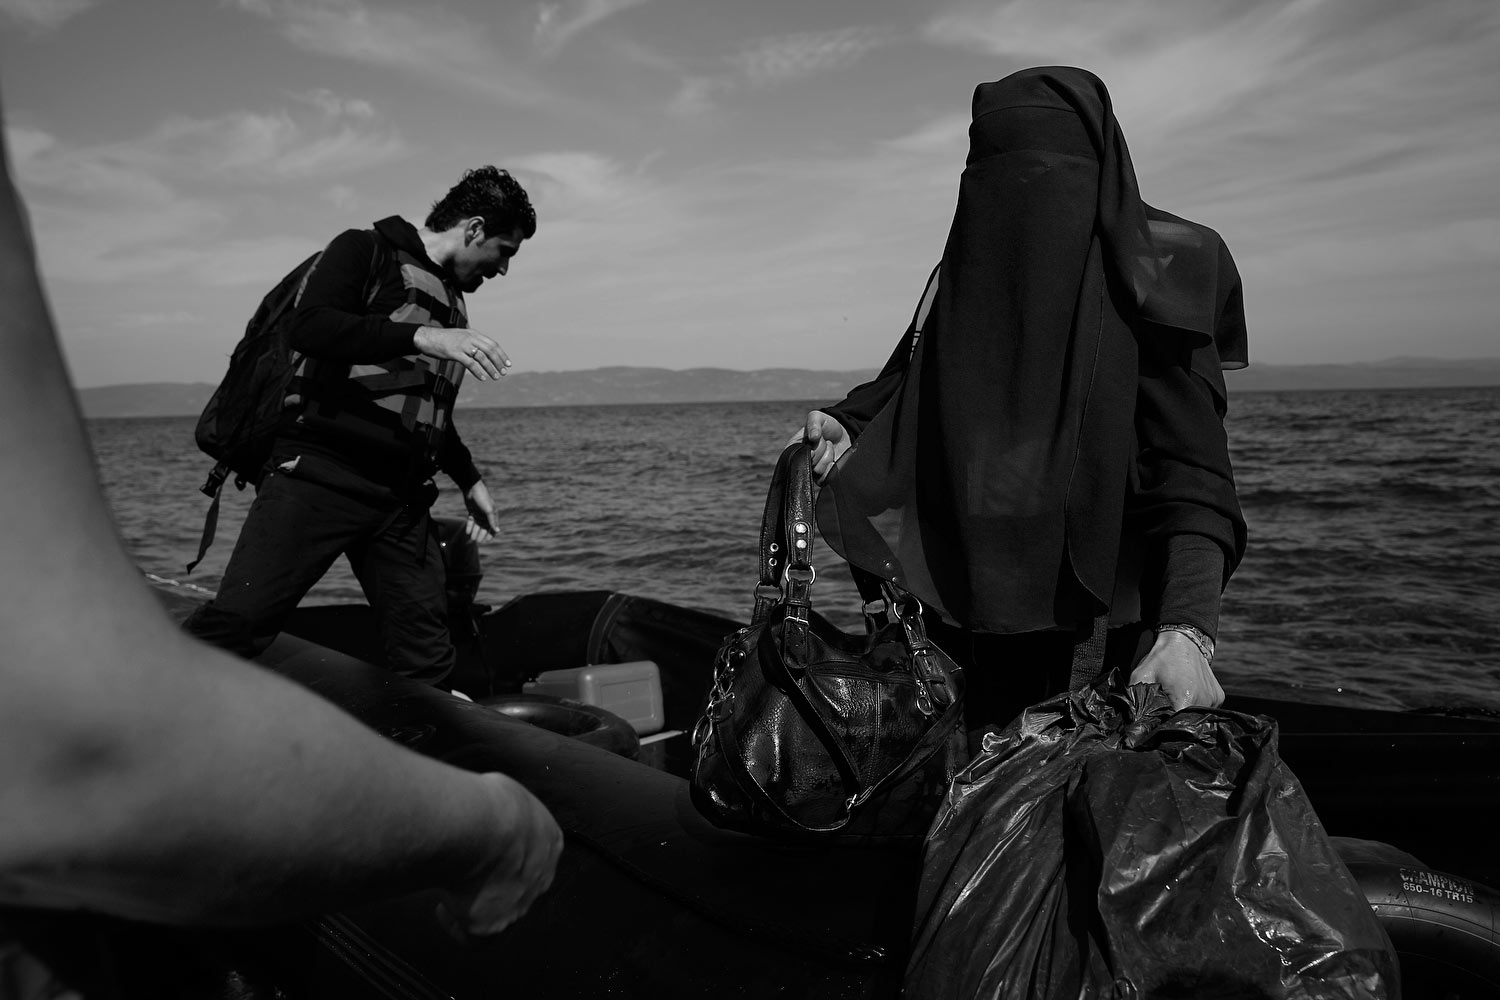 A veiled Muslim woman carries both a handbag and garbage bag holding her possessions while getting off an inflatable boat after arriving on the beach in Lesbos, Greece, Sept. 26, 2015.